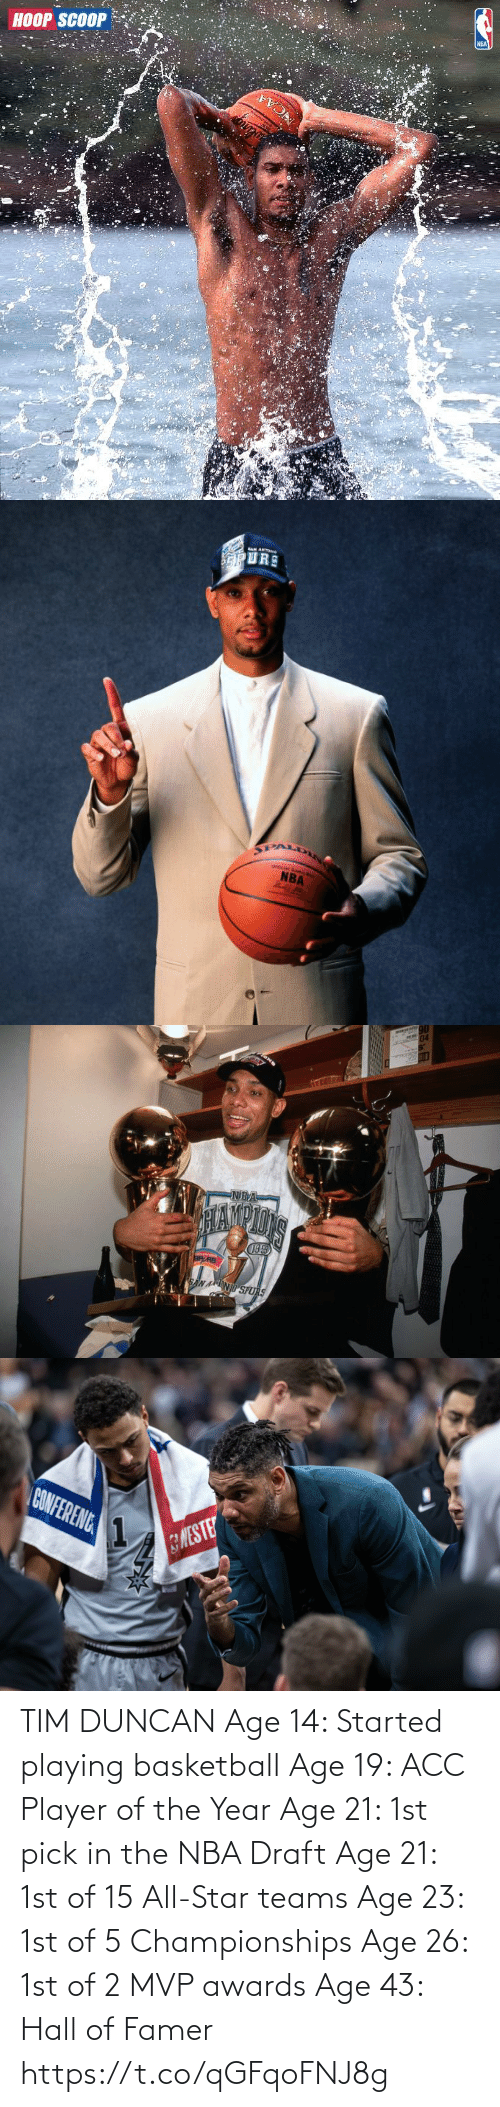 draft: TIM DUNCAN  Age 14: Started playing basketball Age 19: ACC Player of the Year Age 21: 1st pick in the NBA Draft Age 21: 1st of 15 All-Star teams Age 23: 1st of 5 Championships Age 26: 1st of 2 MVP awards Age 43: Hall of Famer https://t.co/qGFqoFNJ8g